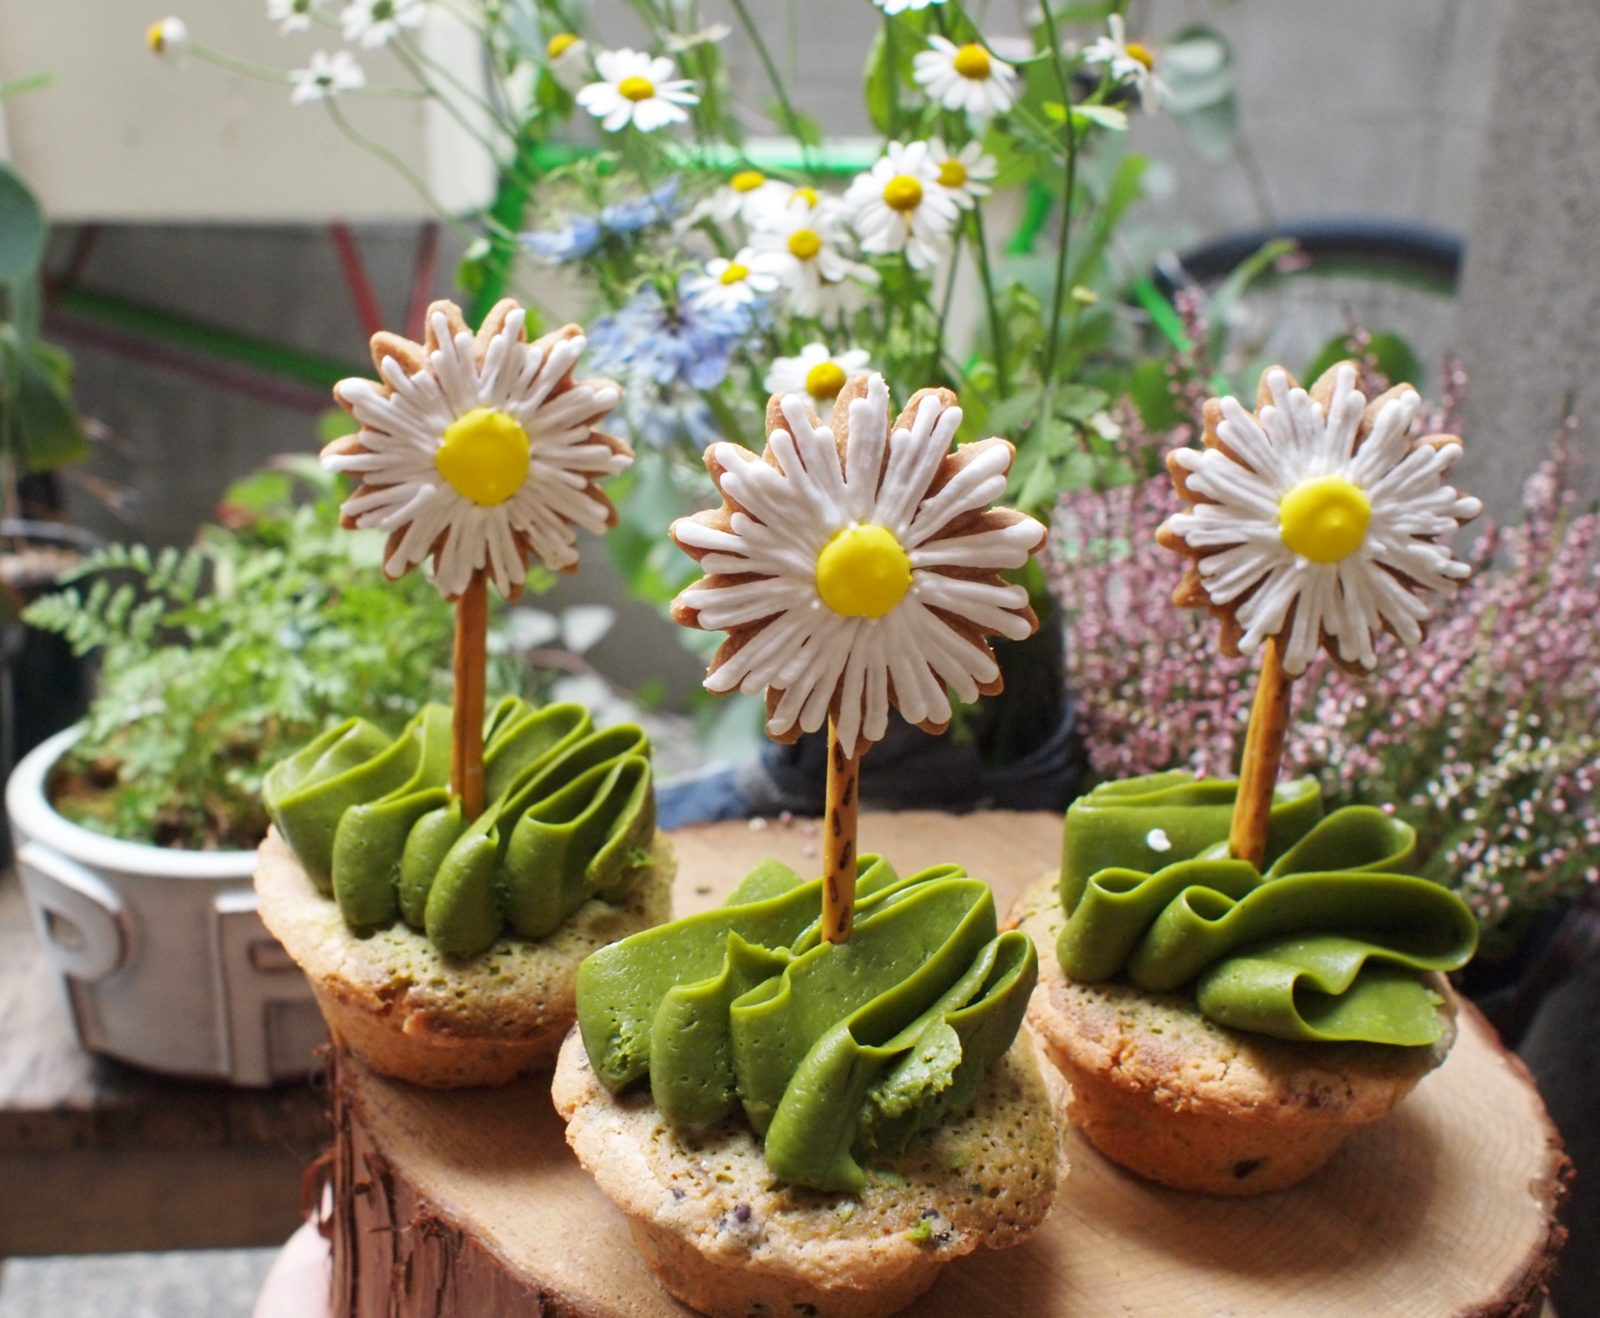 swEATworkshop -flower sweets -